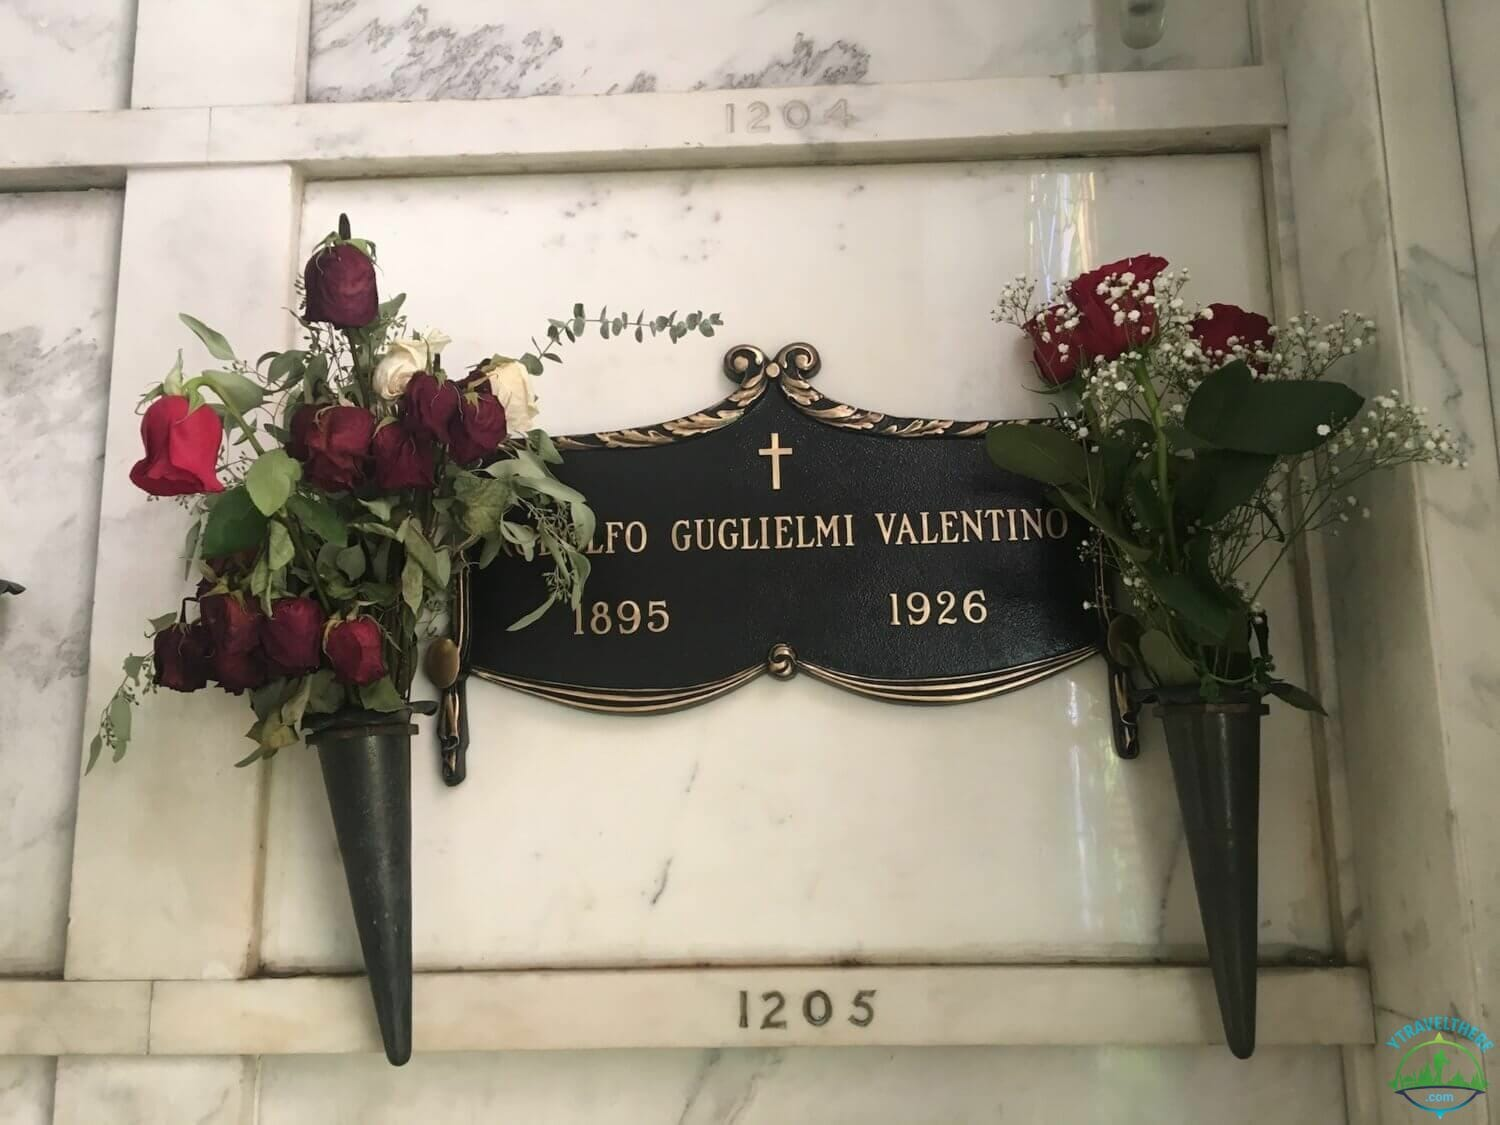 Rudolph Valentino final resting place, hollywood forever cemetery